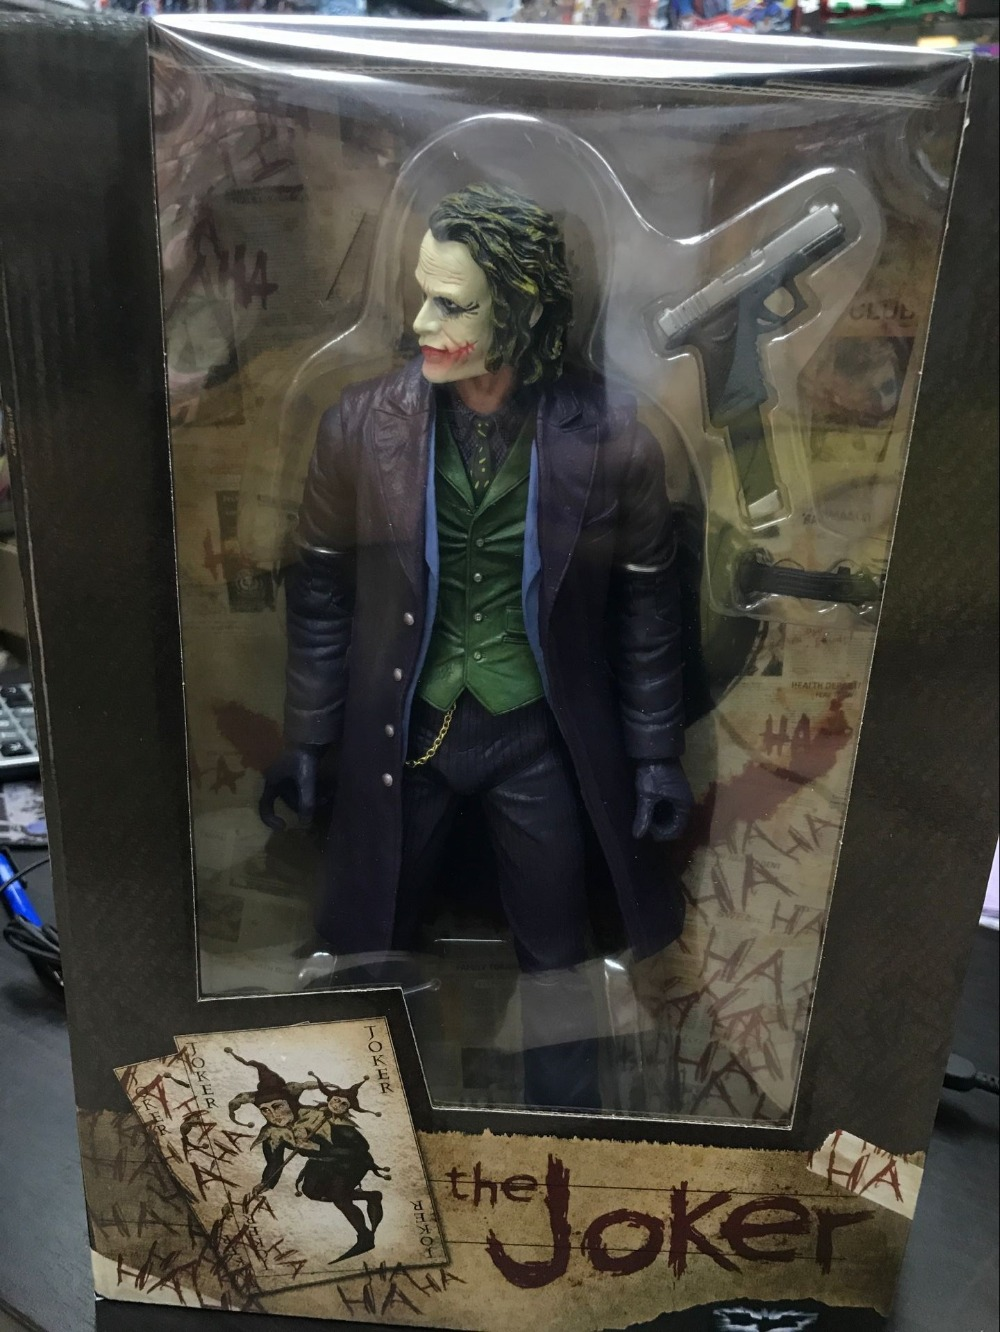 NECA The Joker Batman PVC Action Figure Collectible Model Toy Brinquedos12inch 30cm shfiguarts batman the joker injustice ver pvc action figure collectible model toy 15cm boxed